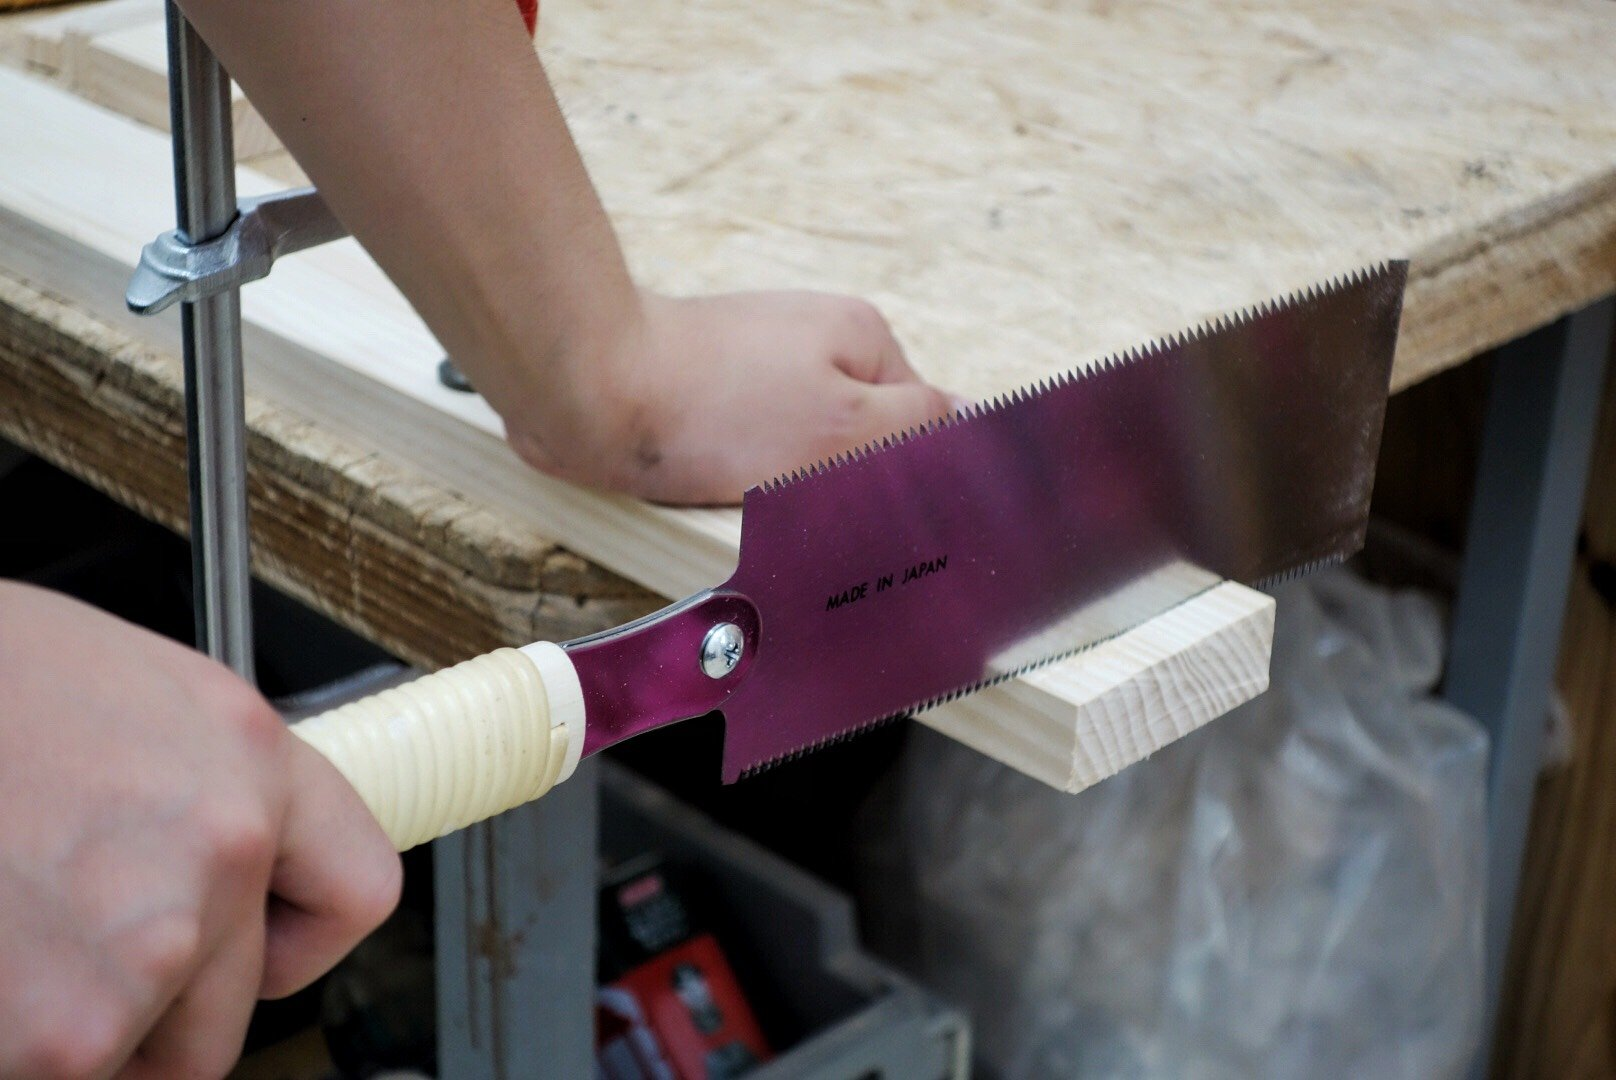 SUIZAN Japanese Pull Saw Hand Saw 9-1/2'' Ryoba (Double Edge) for Woodworking by SUIZAN (Image #7)